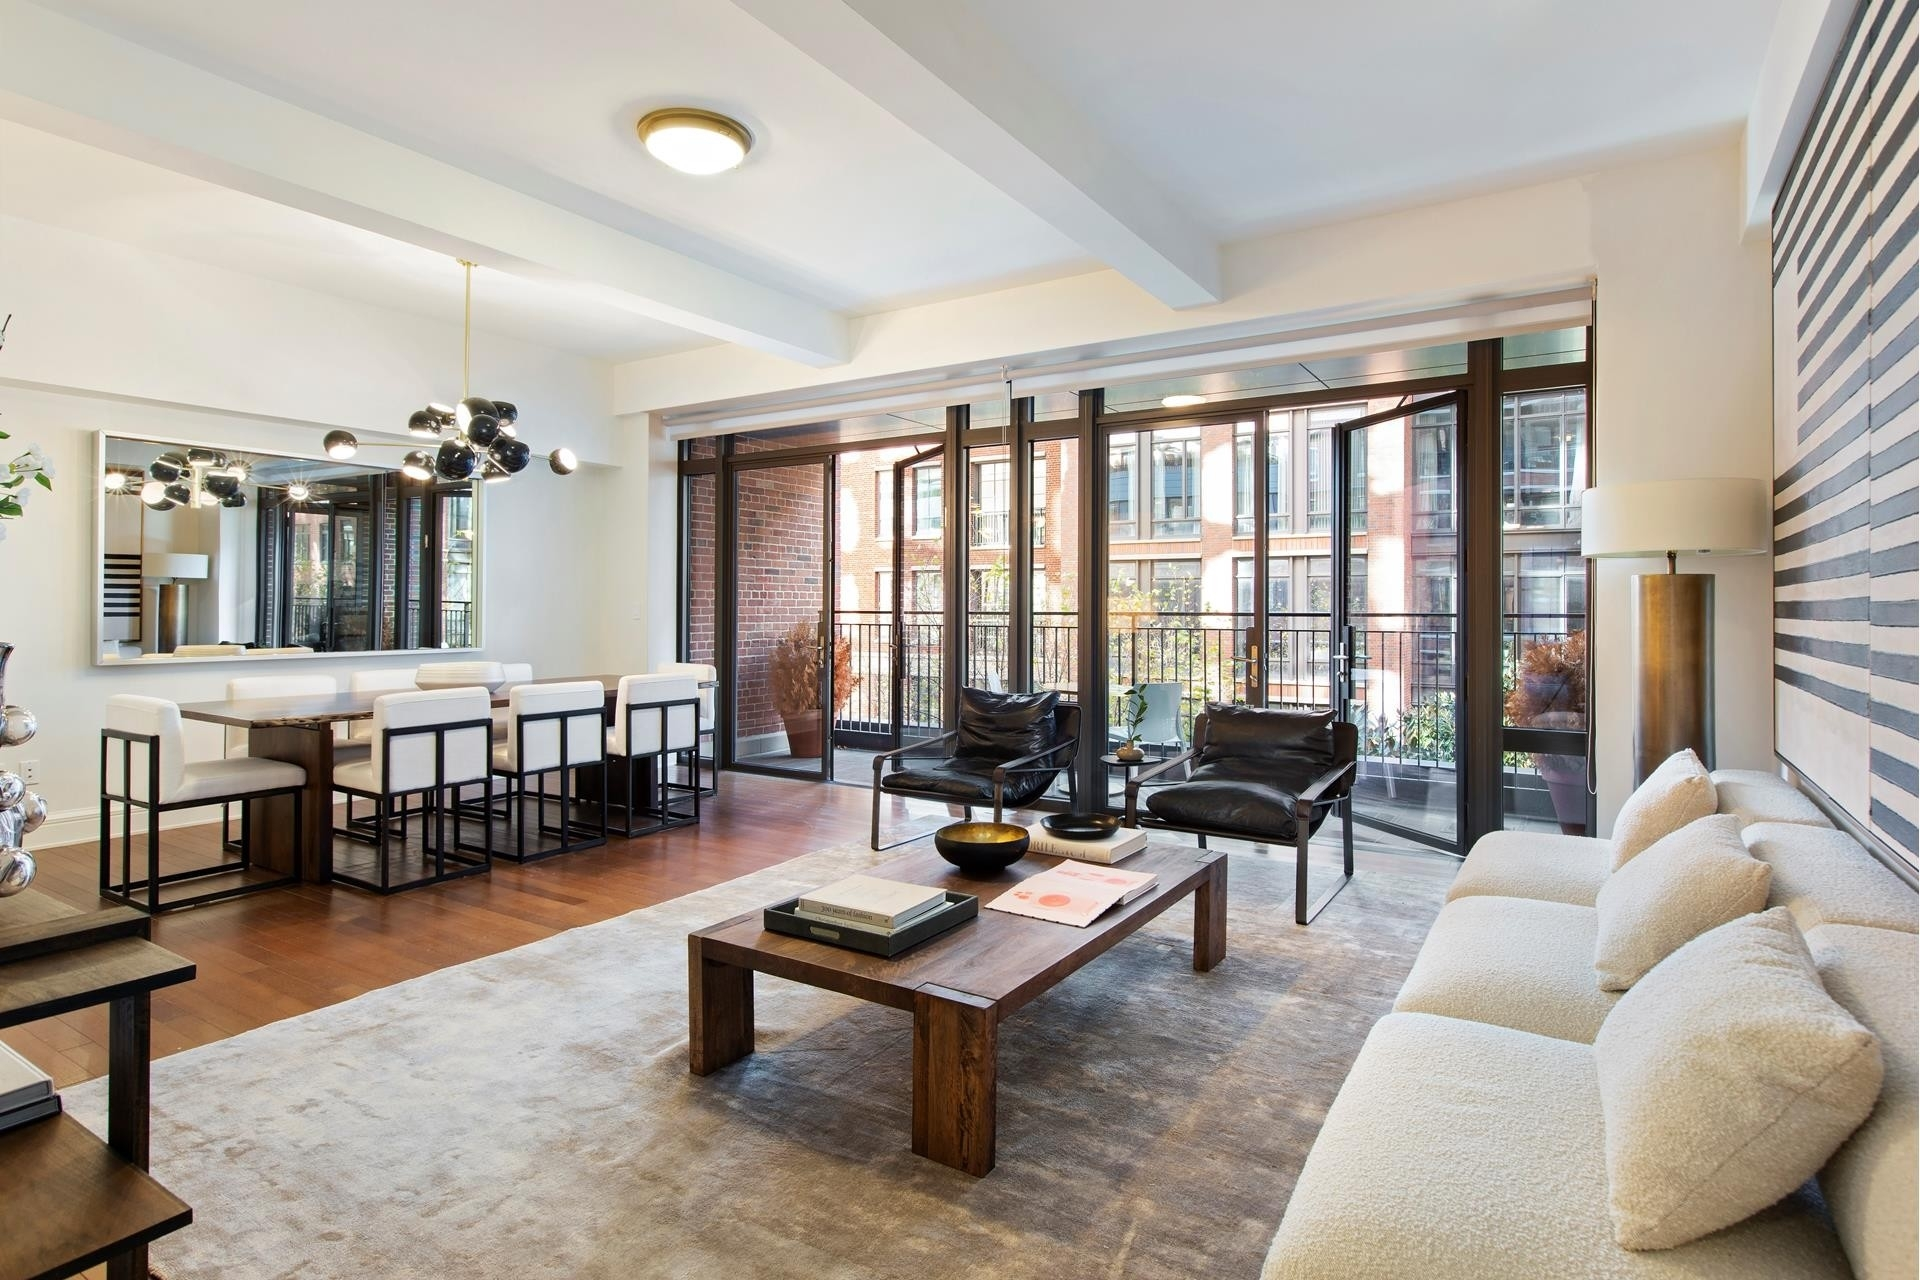 Condominium for Sale at The Greenwich Lane, 160 West 12TH ST, 34 West Village, New York, NY 10011